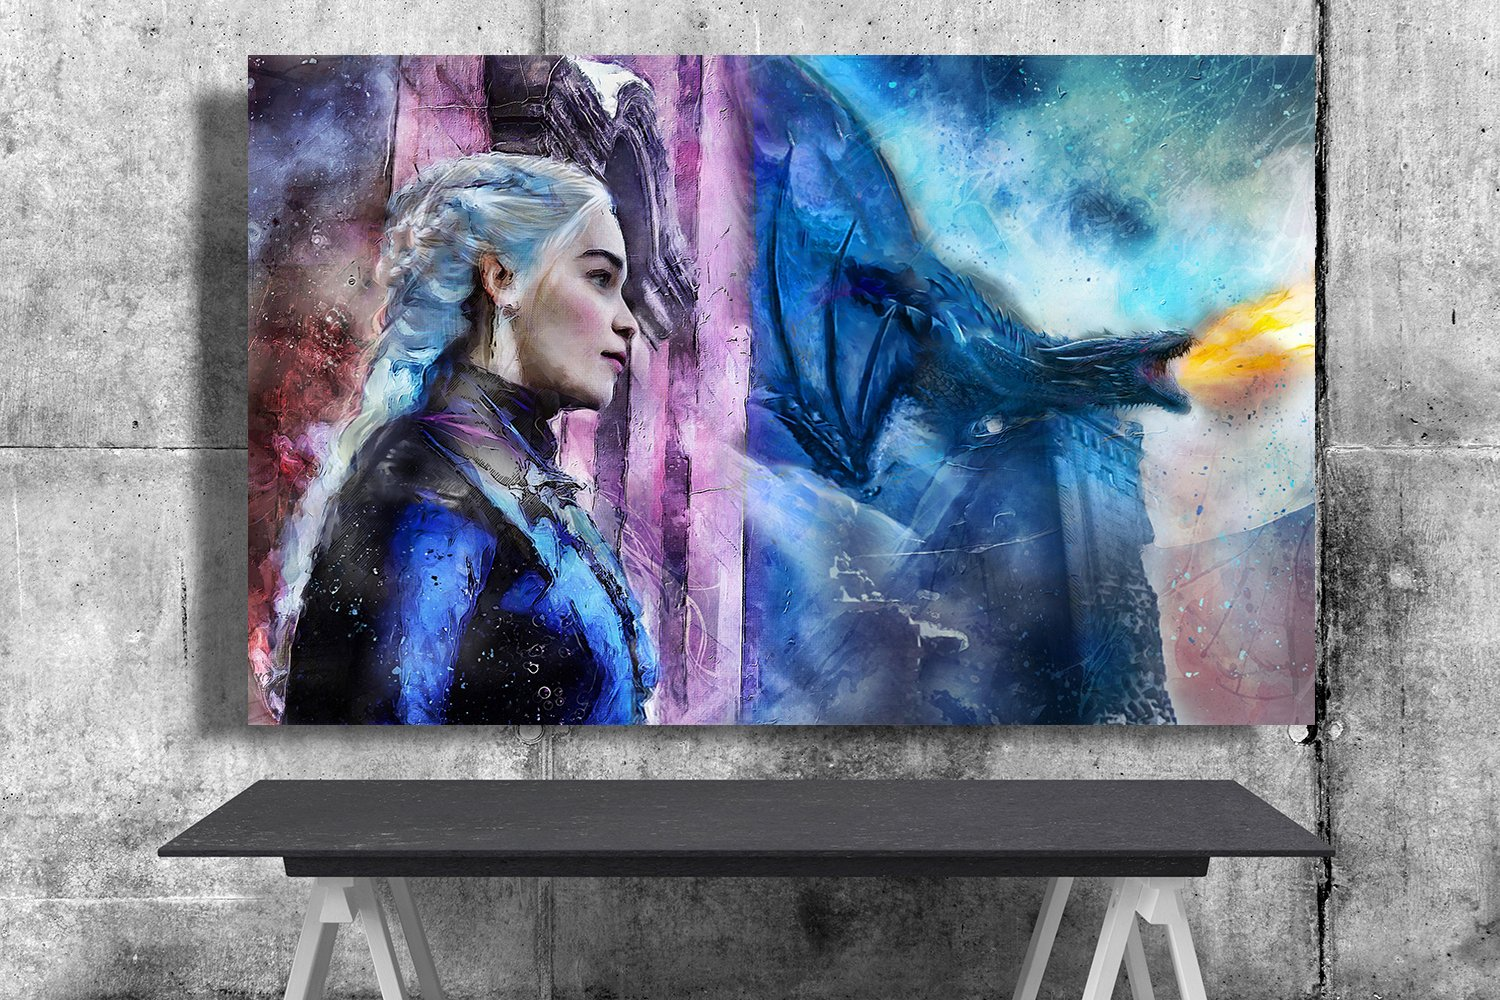 Game of Thrones, Daenerys Targaryen, Emilia Clarke  24x35 inches Canvas Print